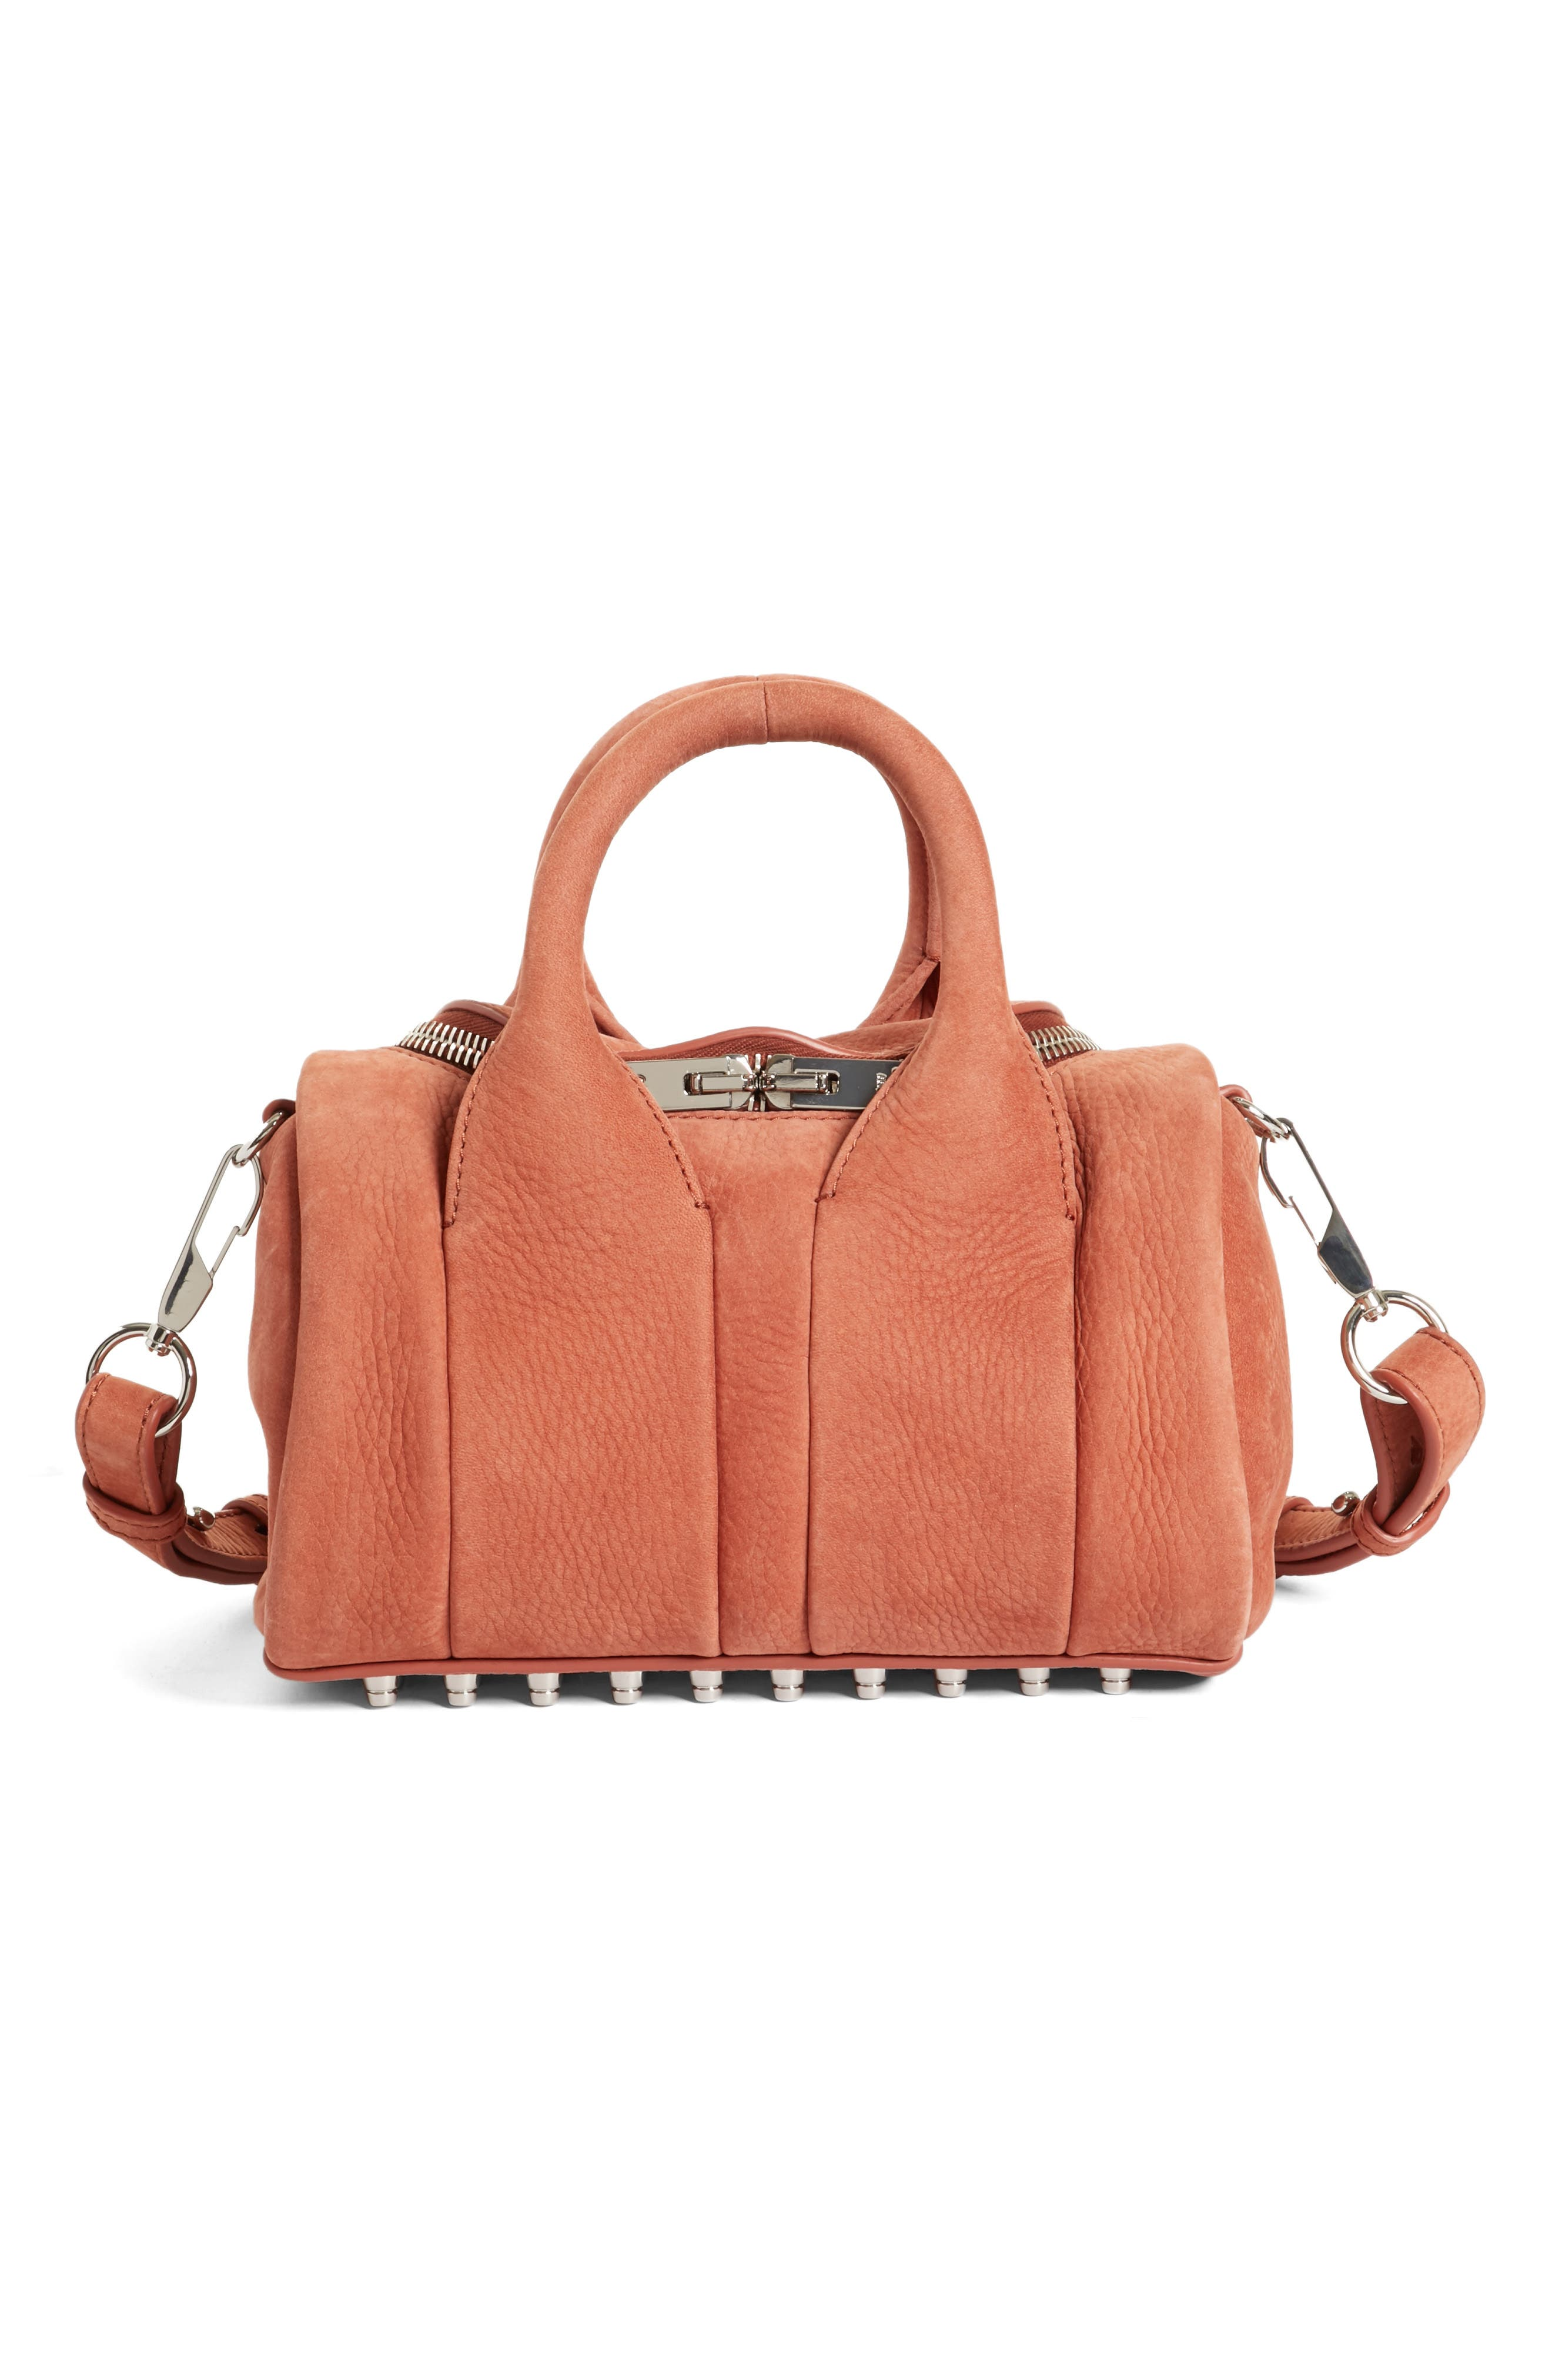 Mini Rockie - Nickel Leather Satchel,                             Main thumbnail 1, color,                             200